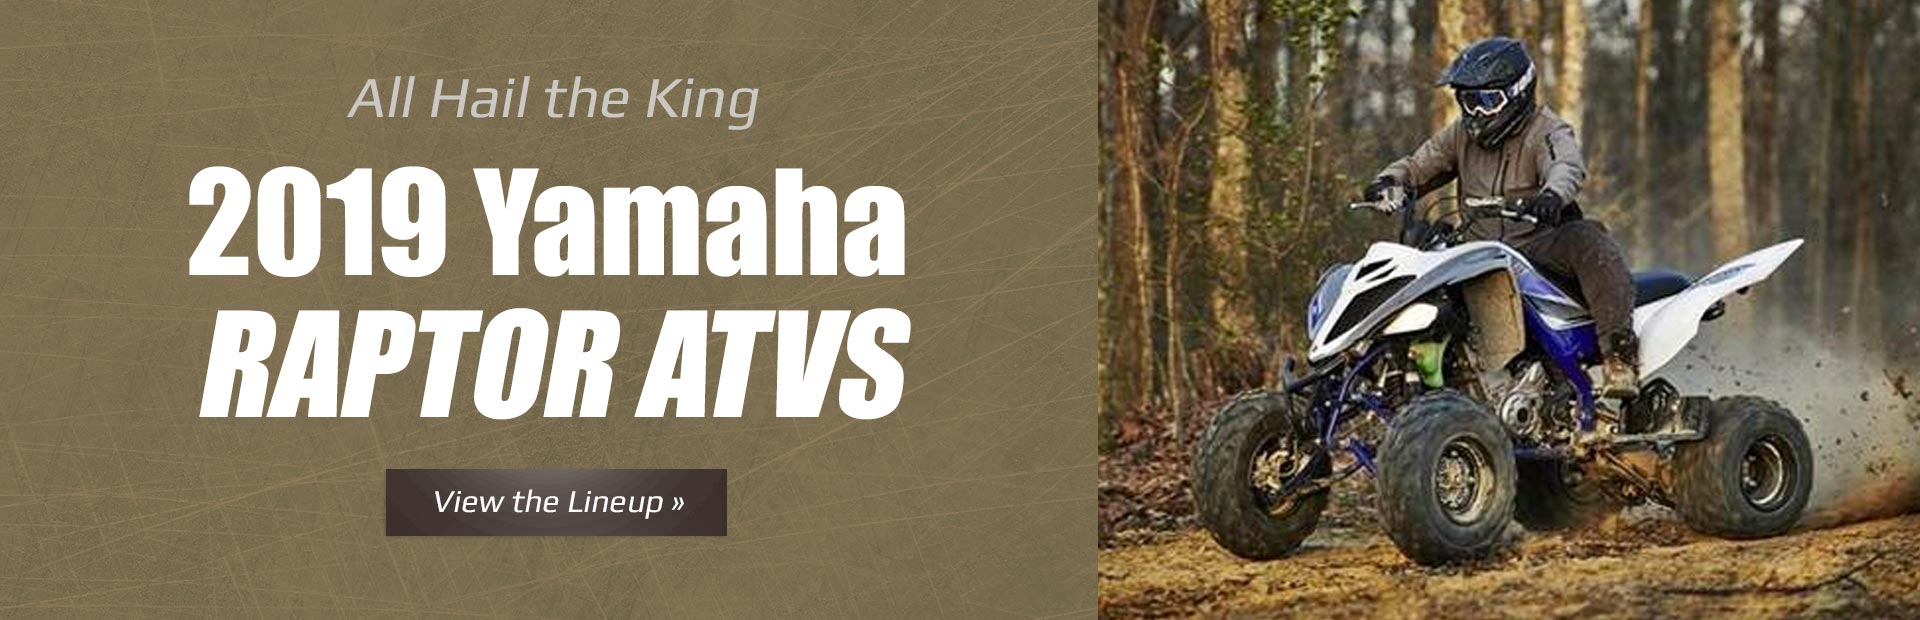 2019 Yamaha Raptor ATVs: Click here to view the models.